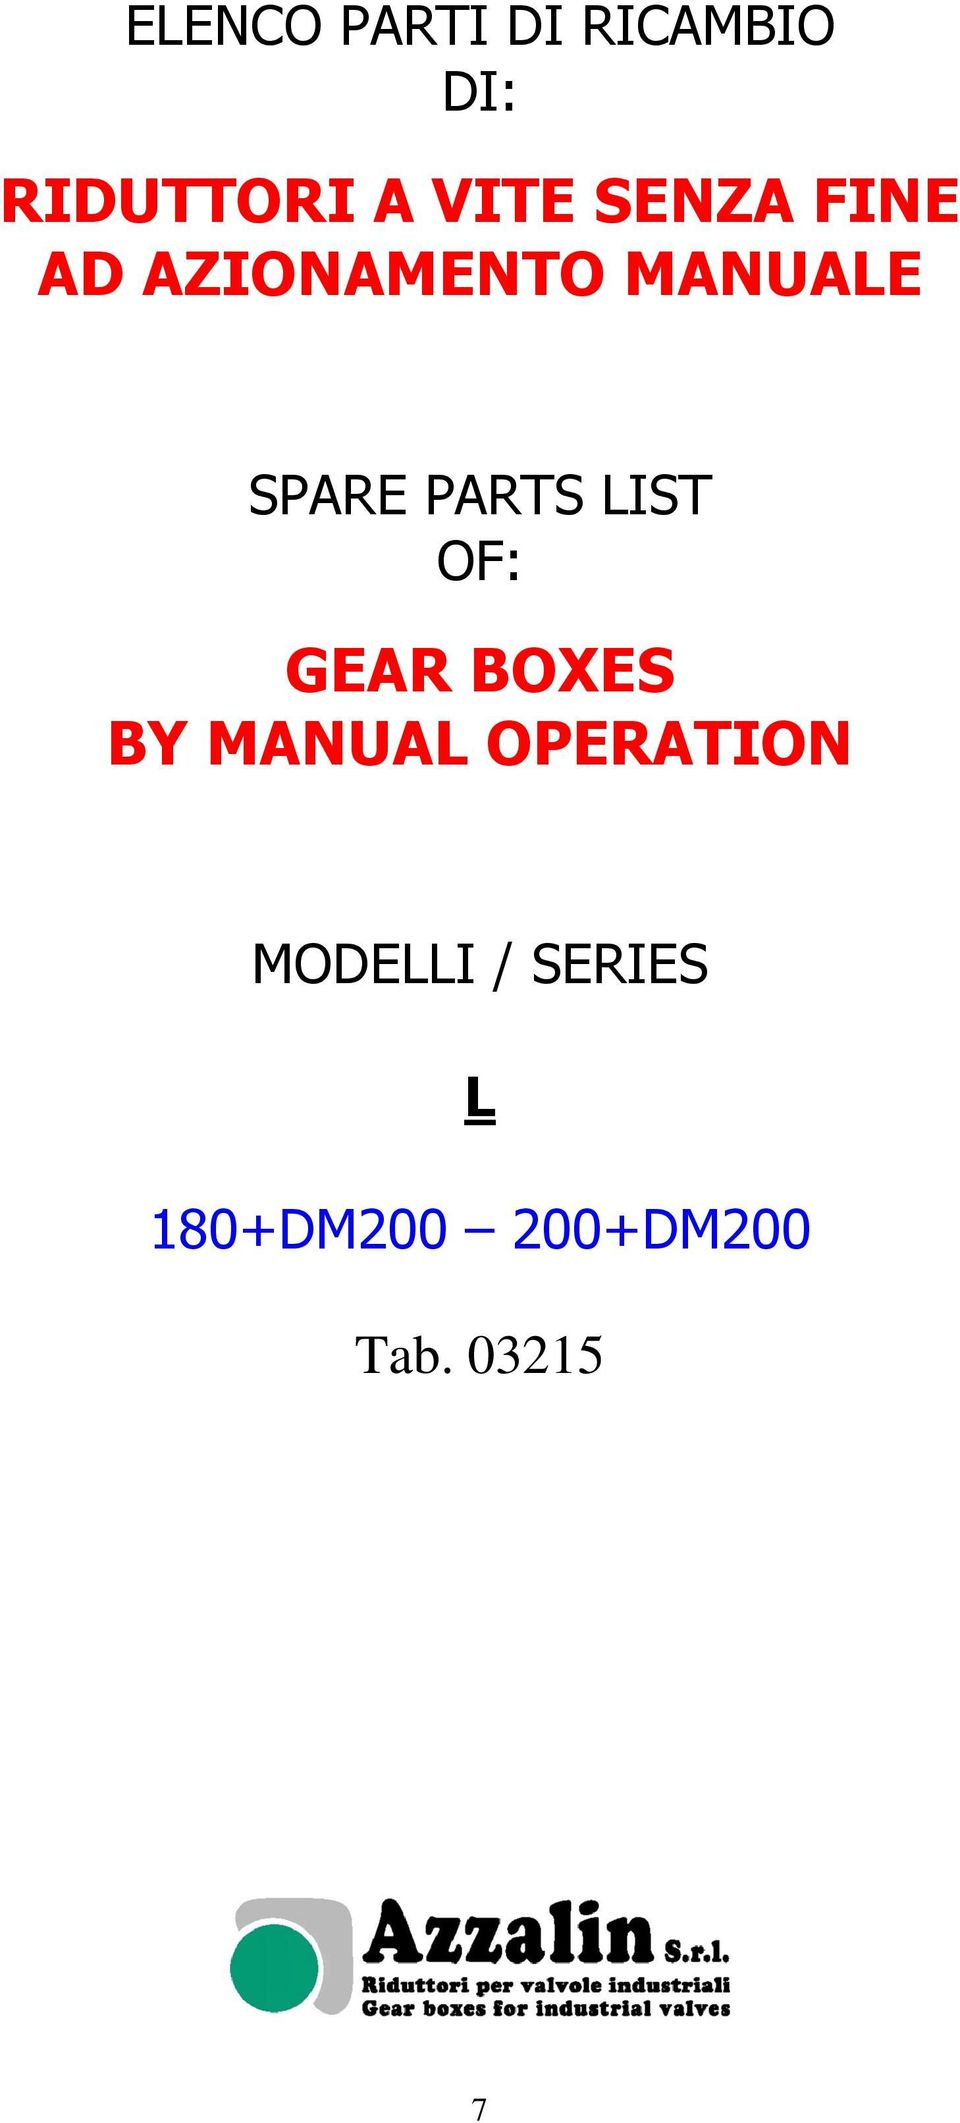 LIST OF: GEAR BOXES BY MANUAL OPERATION